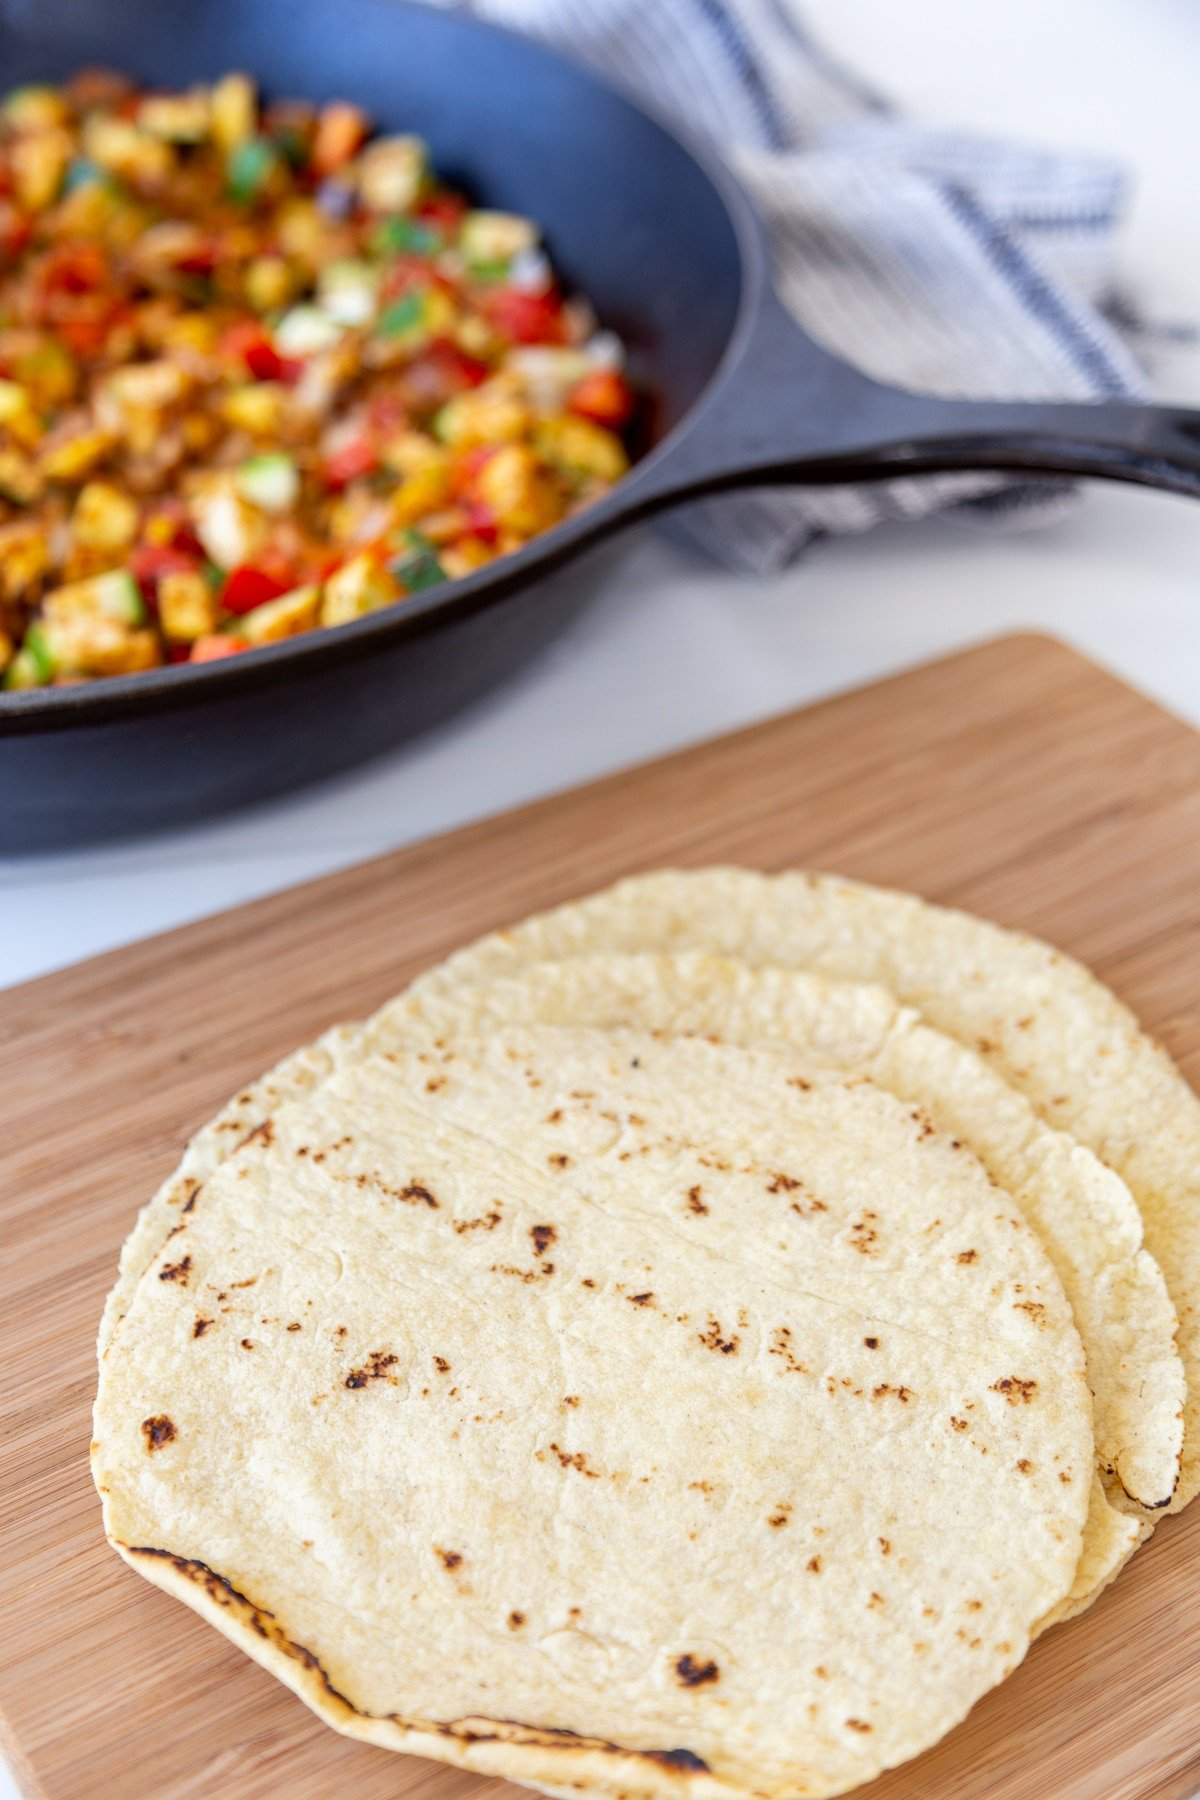 A stack of flour tortillas on a wood board with a skillet of diced veggies behind it.